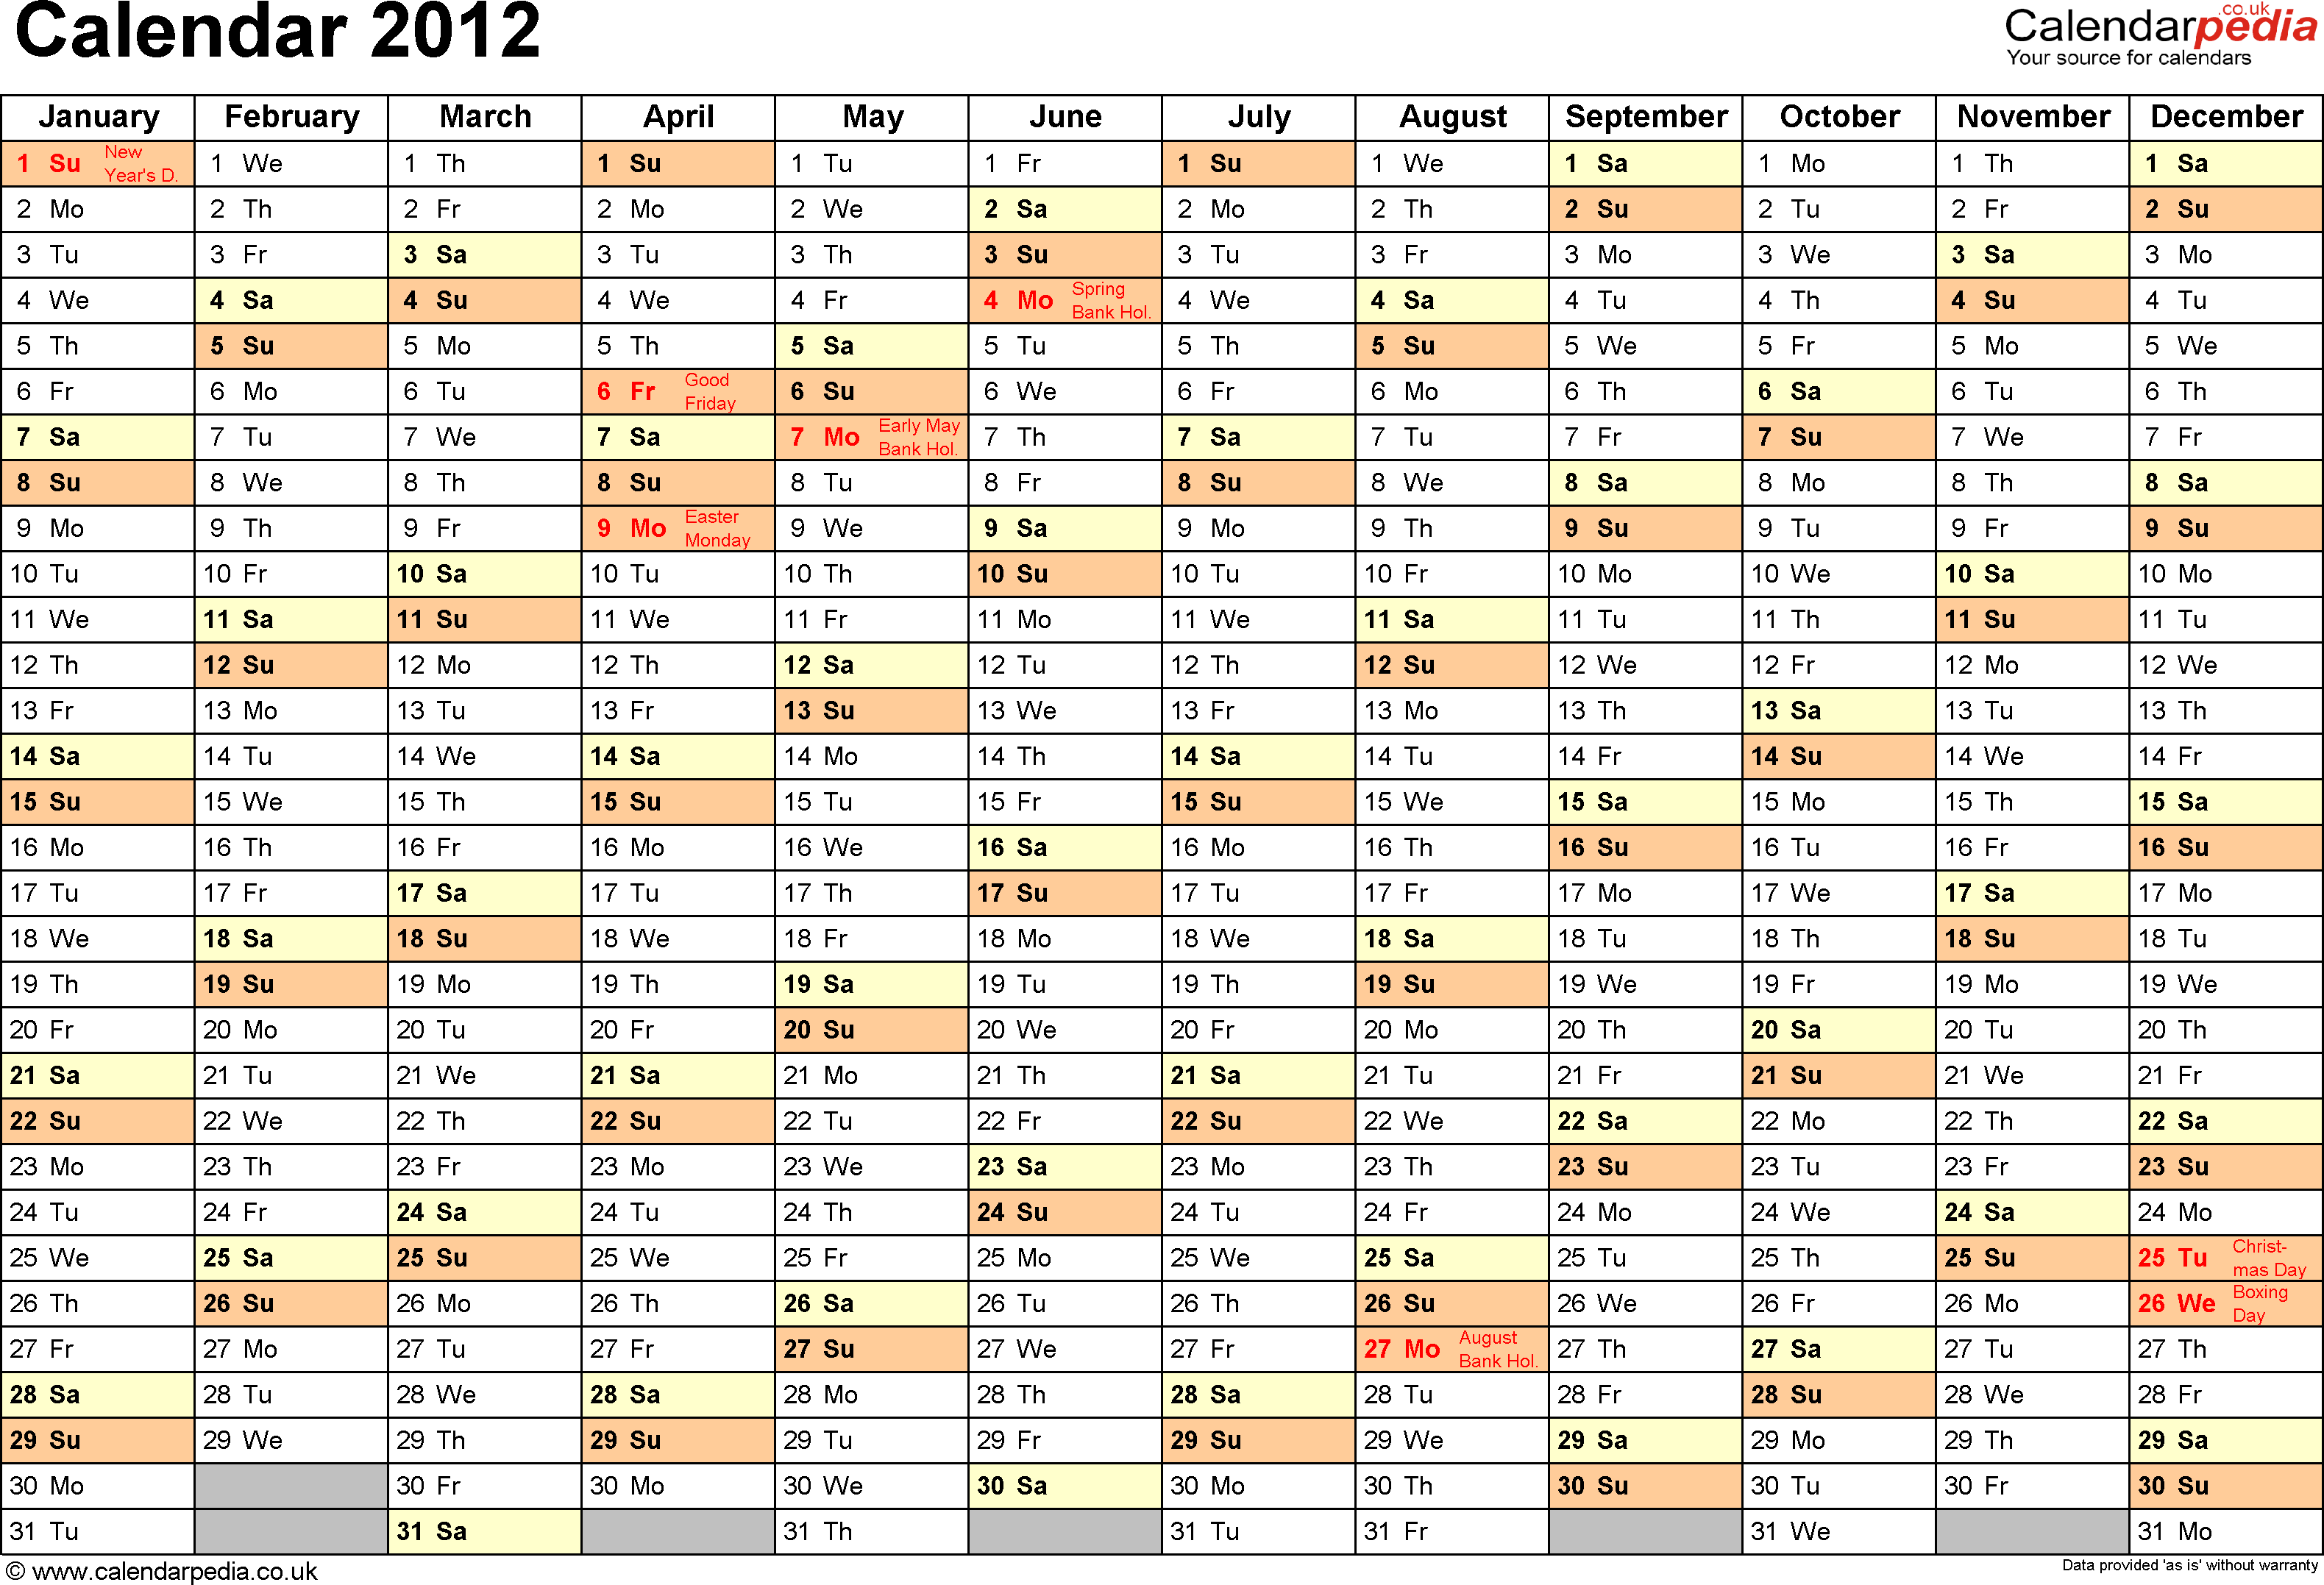 Download Template 2: Yearly calendar 2012 as Word template, landscape orientation, A4, 1 page, months horizontally, days vertically, with UK bank holidays and week numbers